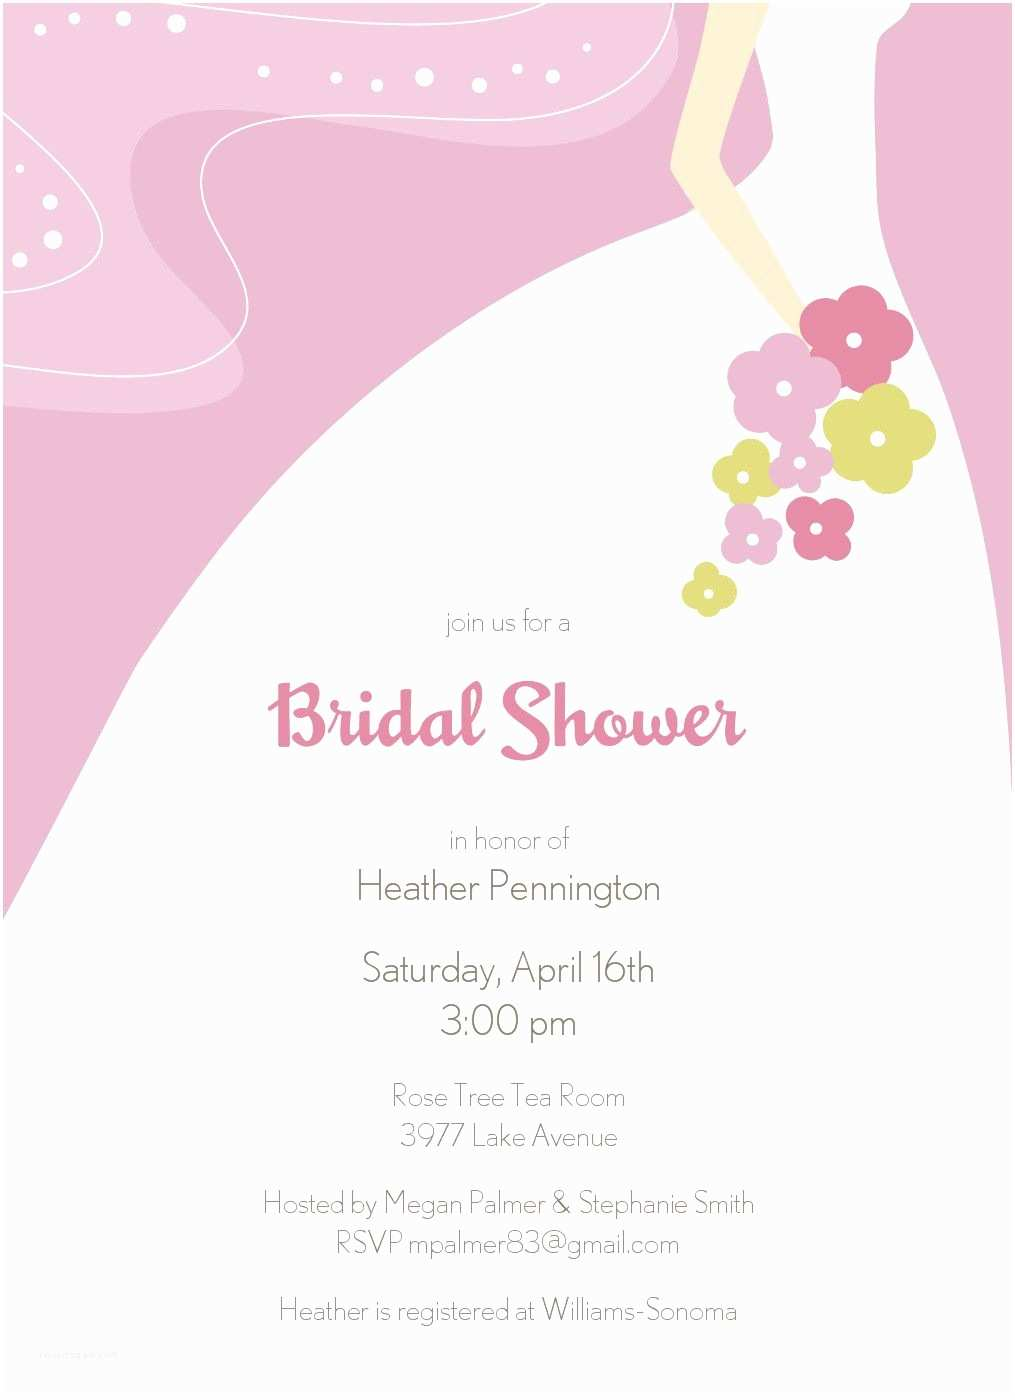 Cheap Bridal Shower Invitations Baby Shower Invitation Printable Baby Shower Invitations